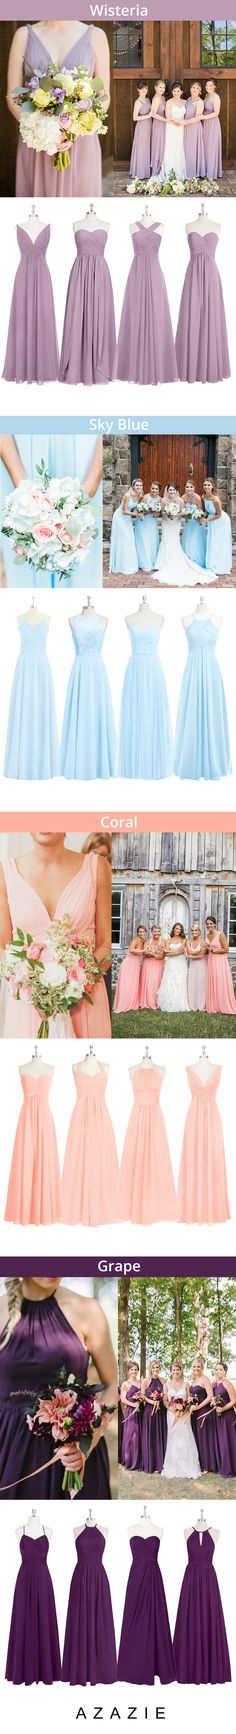 Mixing-and-matching your bridesmaids is easy! Azazie offers 50+ colors to choose from. We offer color swatches to make mixing & matching easier. Wedding tip: Try out our sample program before you purchase to make sure you are completely in love with a dress! Azazie has over 100 styles from delicate lace to bold satins. Shop our affordable bridesmaid dresses today!| 1st from clairedianaphotography.com; 2nd from annaelizabethphotography.com; 3rd kristaleephotography.com; 4th…